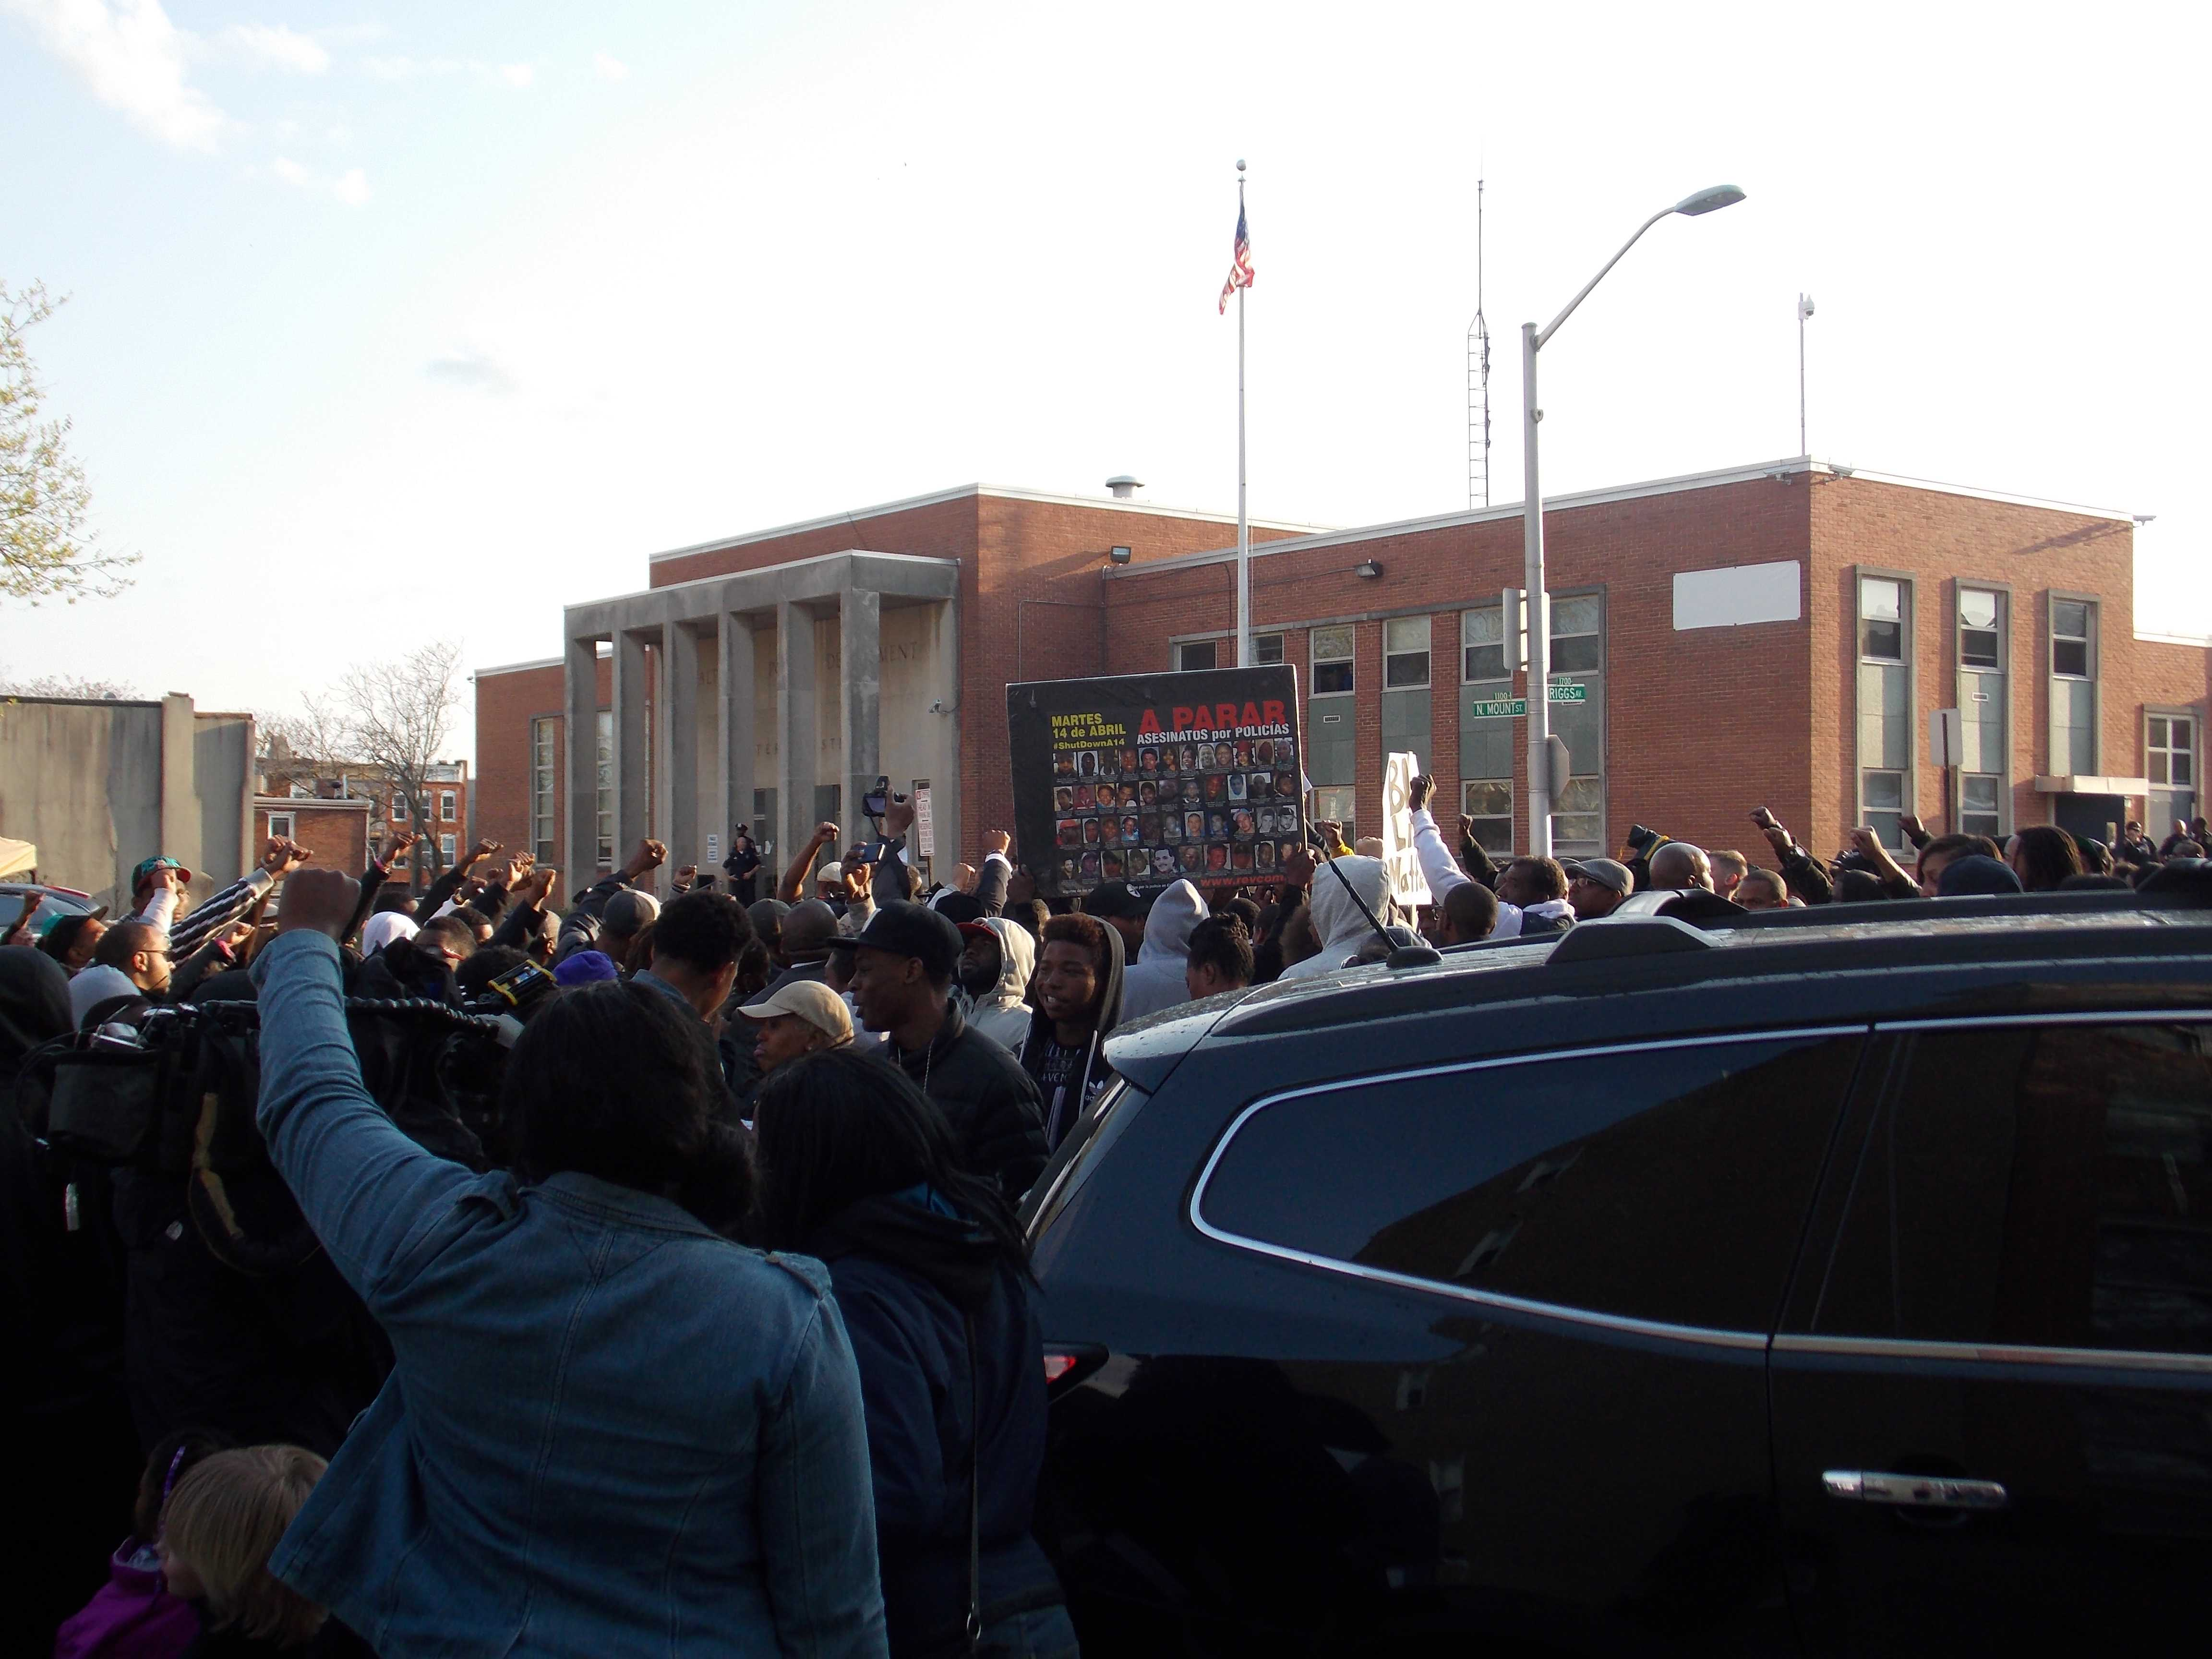 Citizens once again rally at the Western District Police Station in order to demand justice for Freddie Gray.